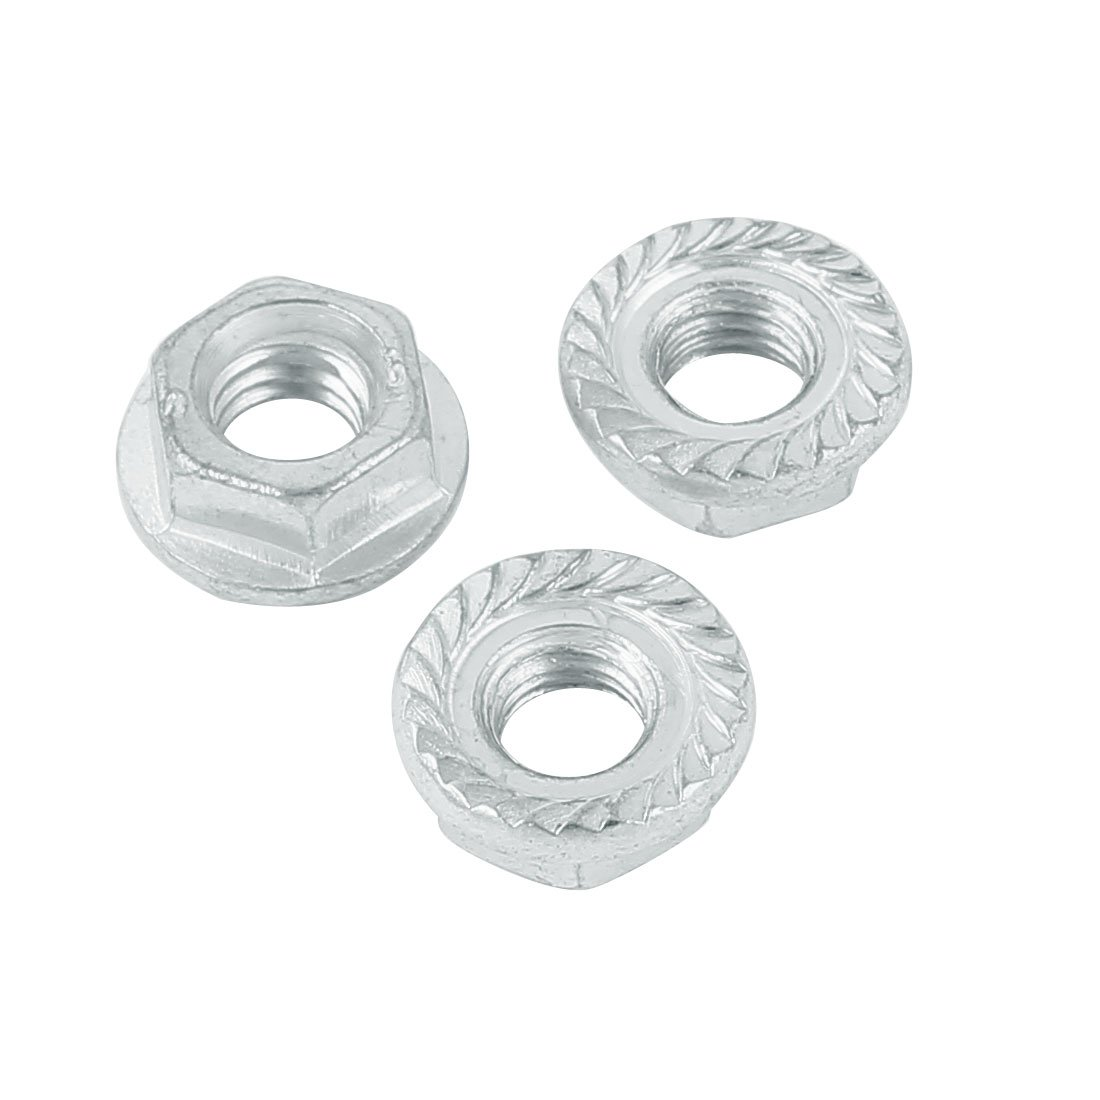 MSC 4-01-10PK R 4 mm OD Pack of 10 MettleAir MSC 4-01 Push to Connect Meter Out Male Speed Control Fitting R 1//8 BSPT 1//8 BSPT 4 mm OD Pack of 10